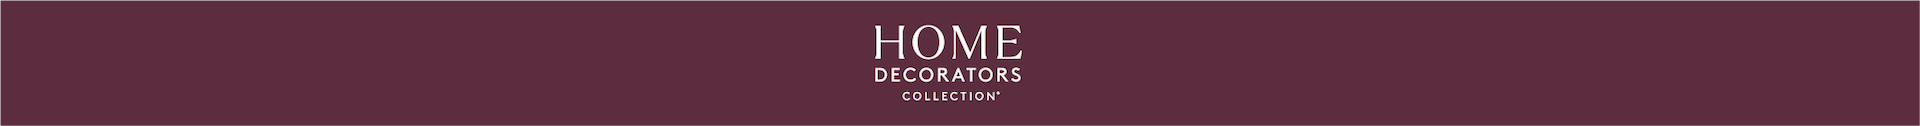 This product is Home Decorators Collection brand.